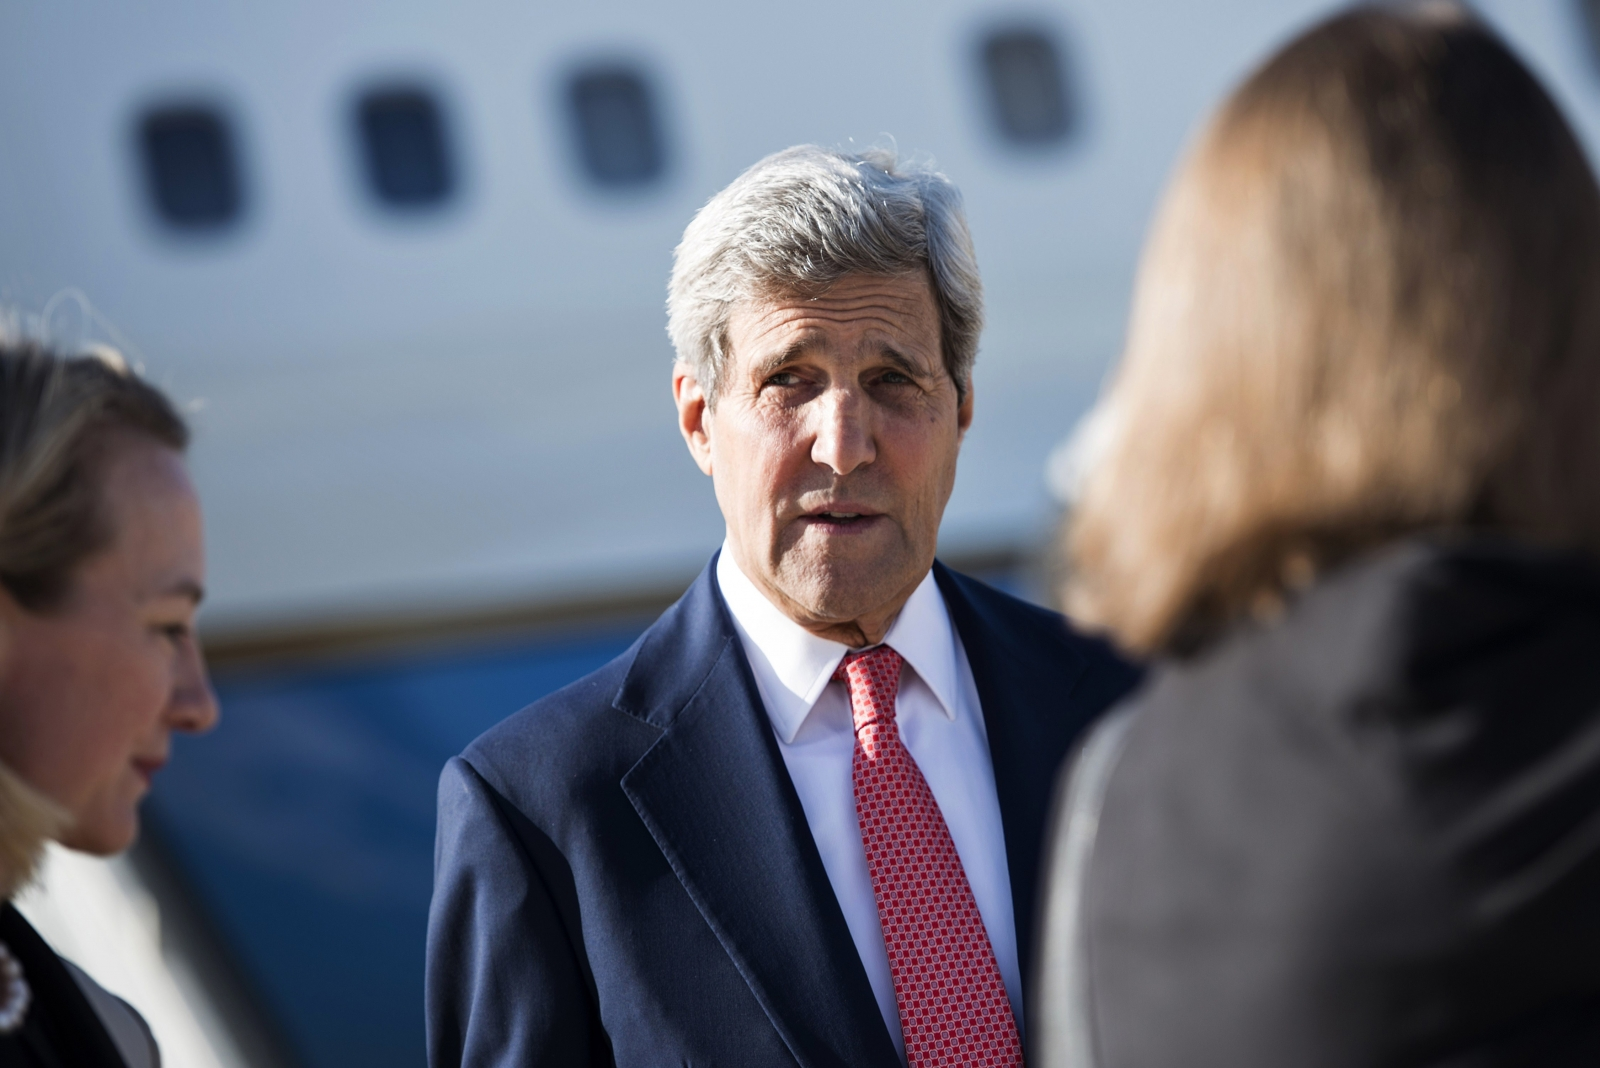 U.S. Secretary of State John Kerry arrives at Queen Alia Airport in Amman